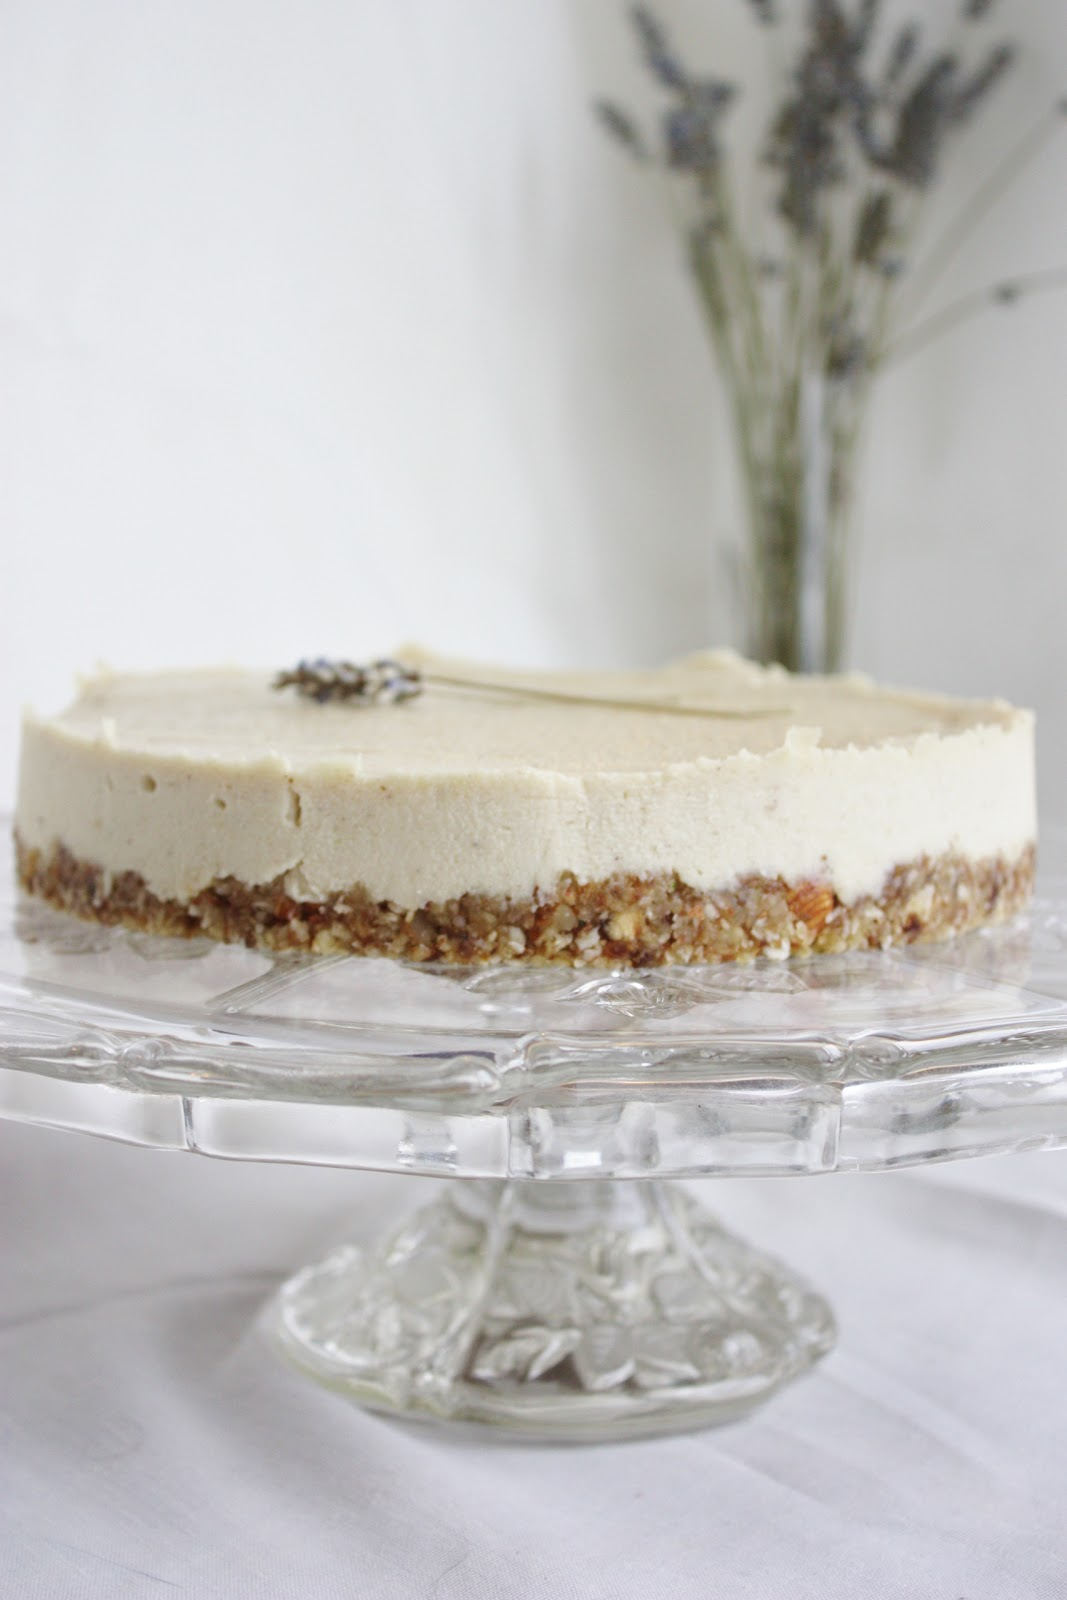 Lavender & Lemon Cheesecake: makes 1 cheesecake